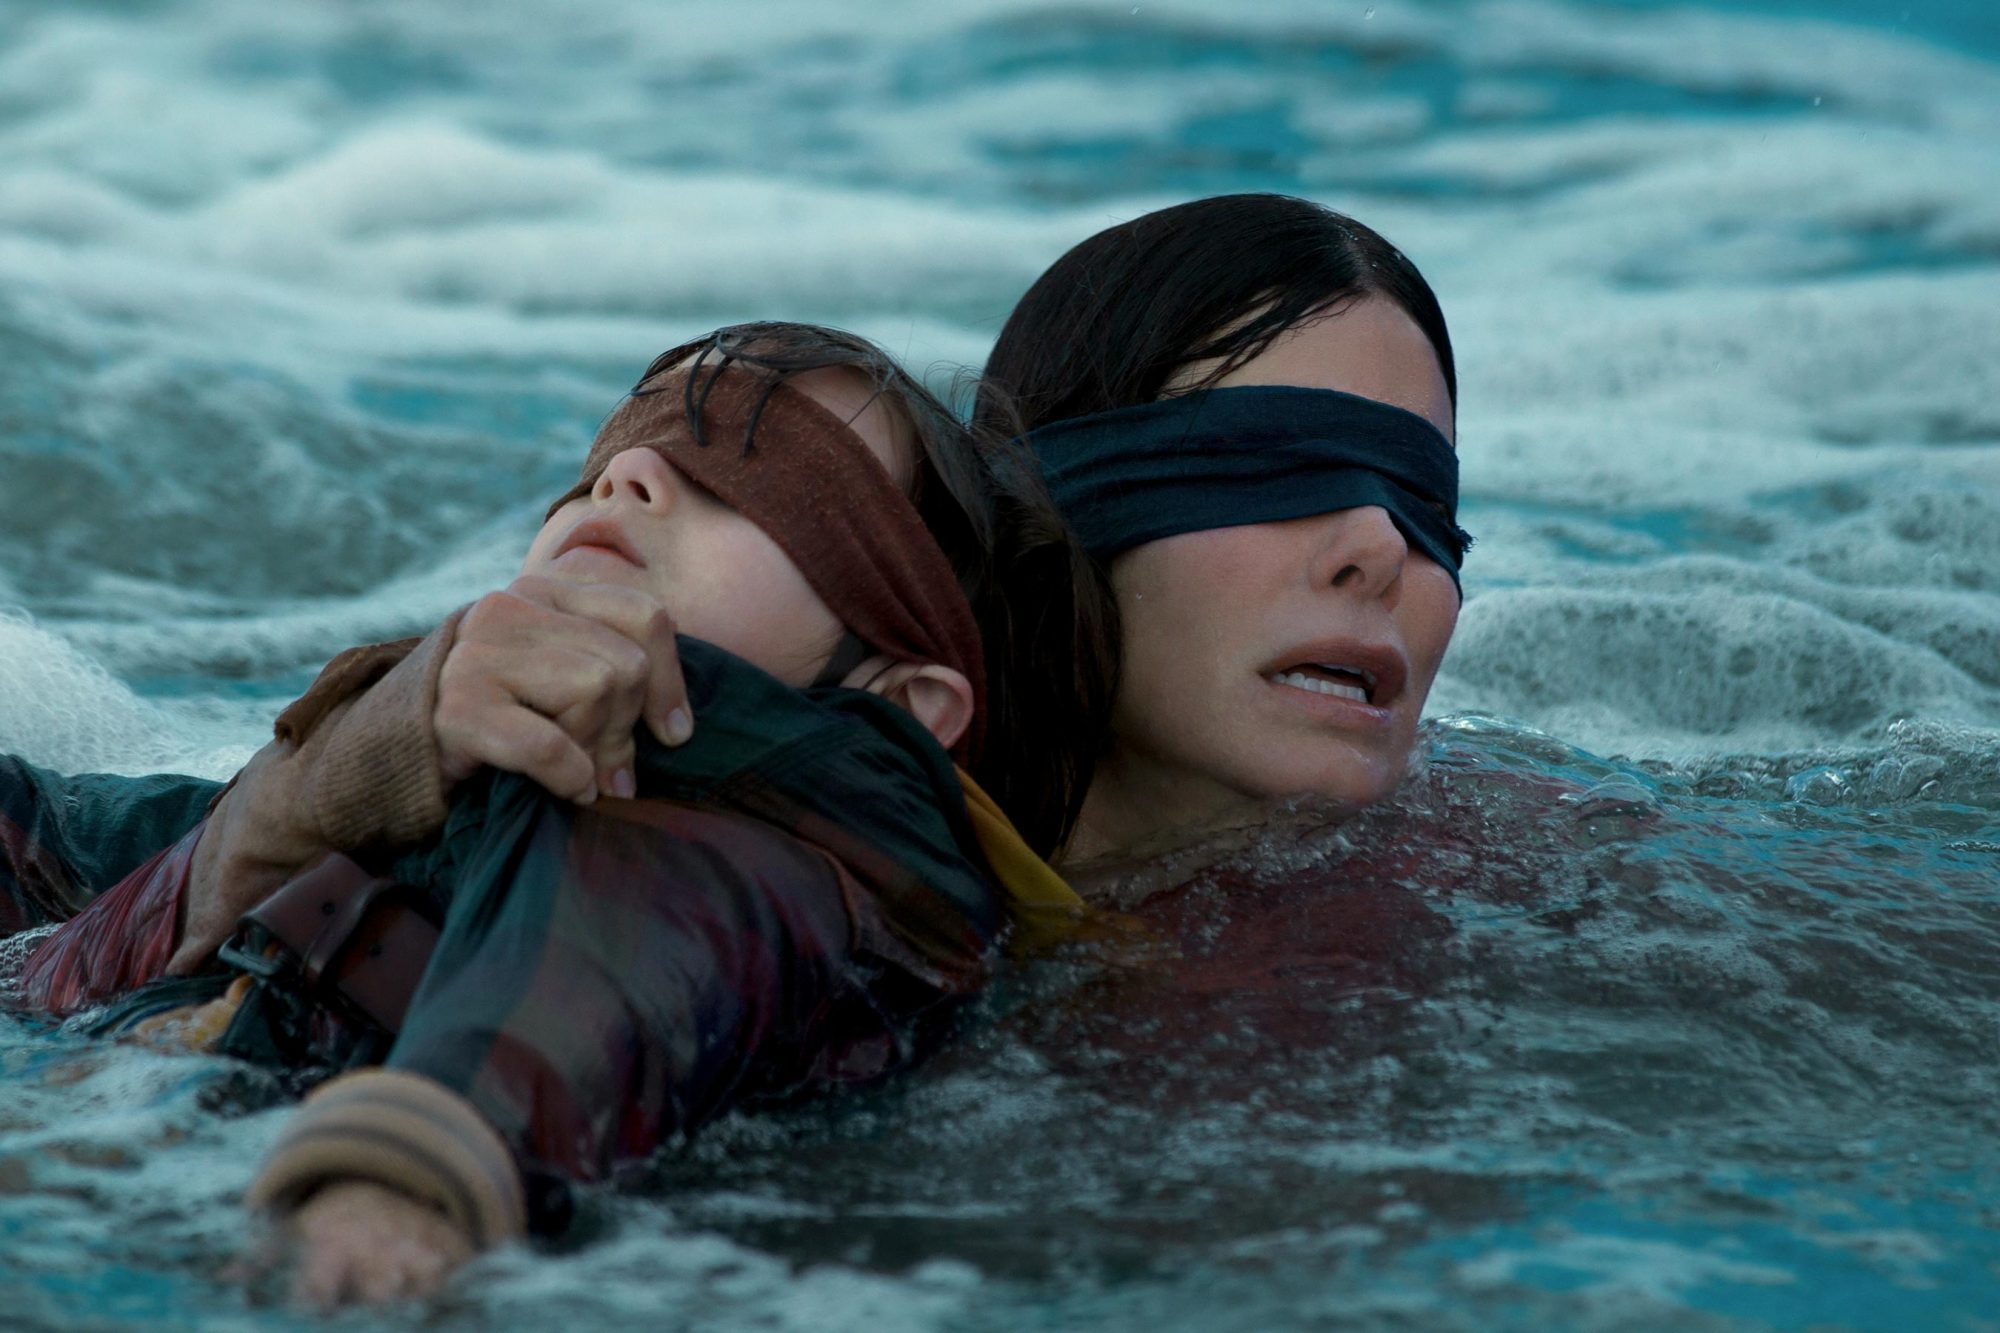 Bird Box directed by Susanne Bier